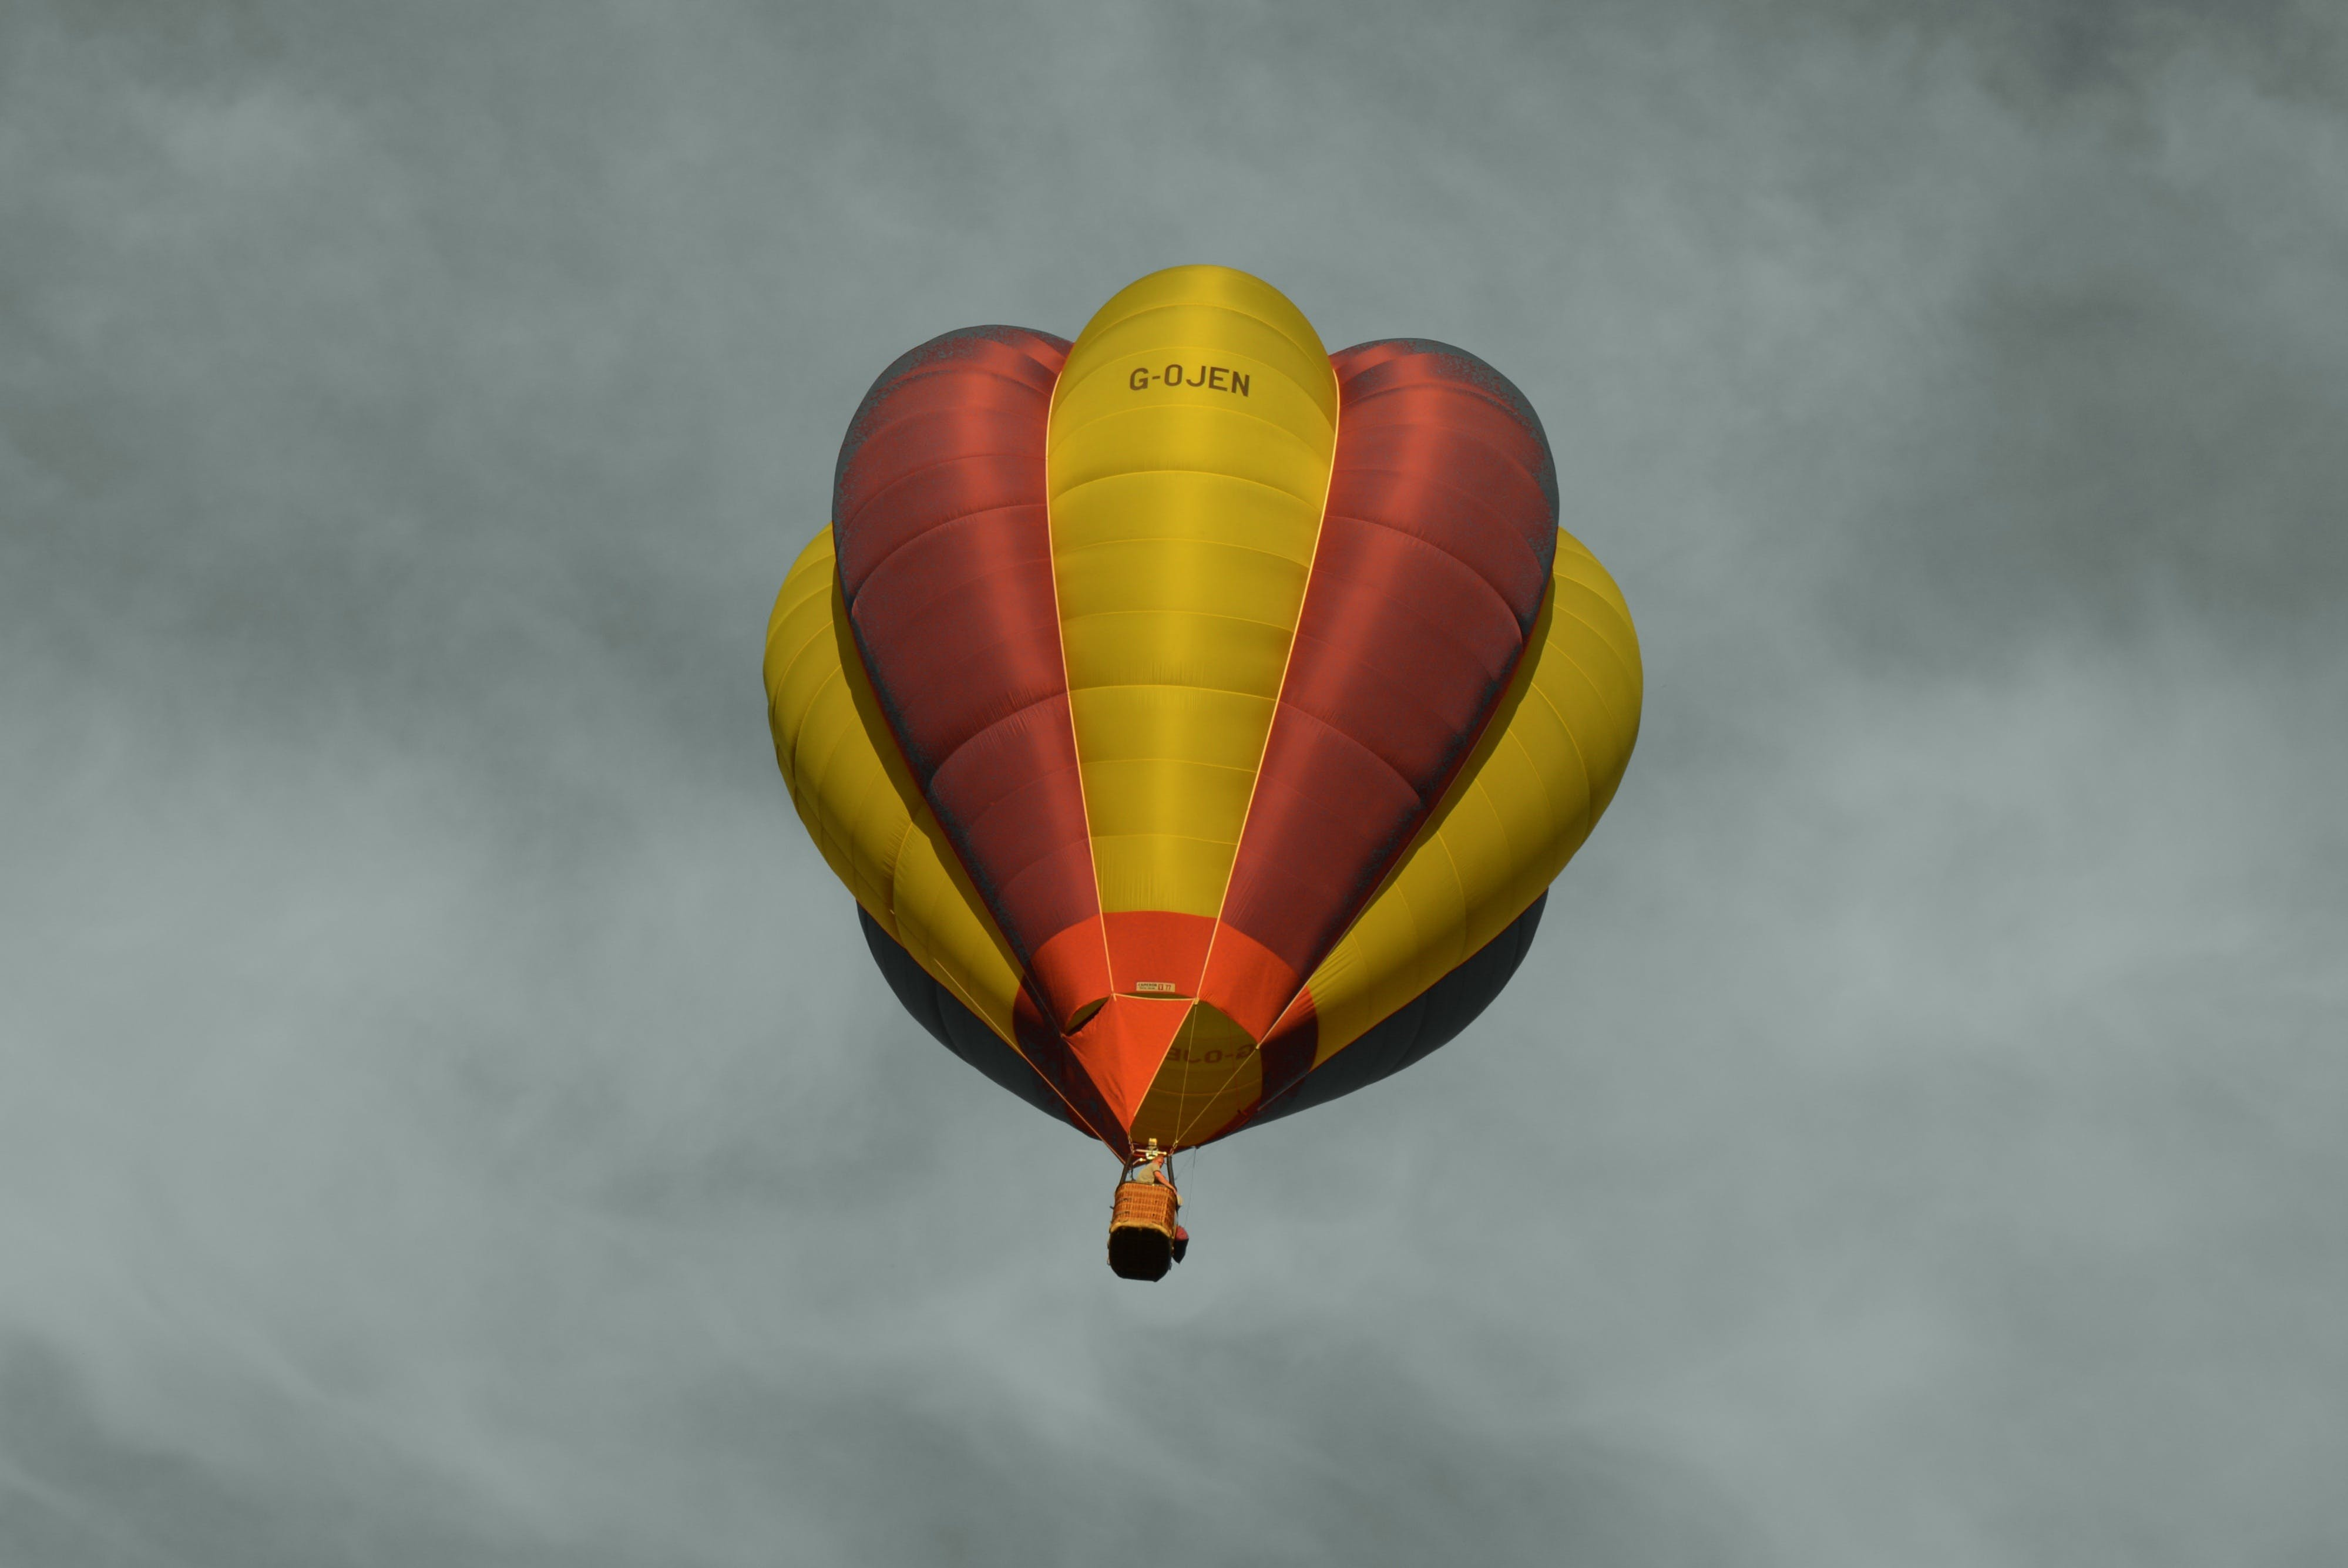 Red and Yellow Hot Air Balloon Under Sea of Clouds